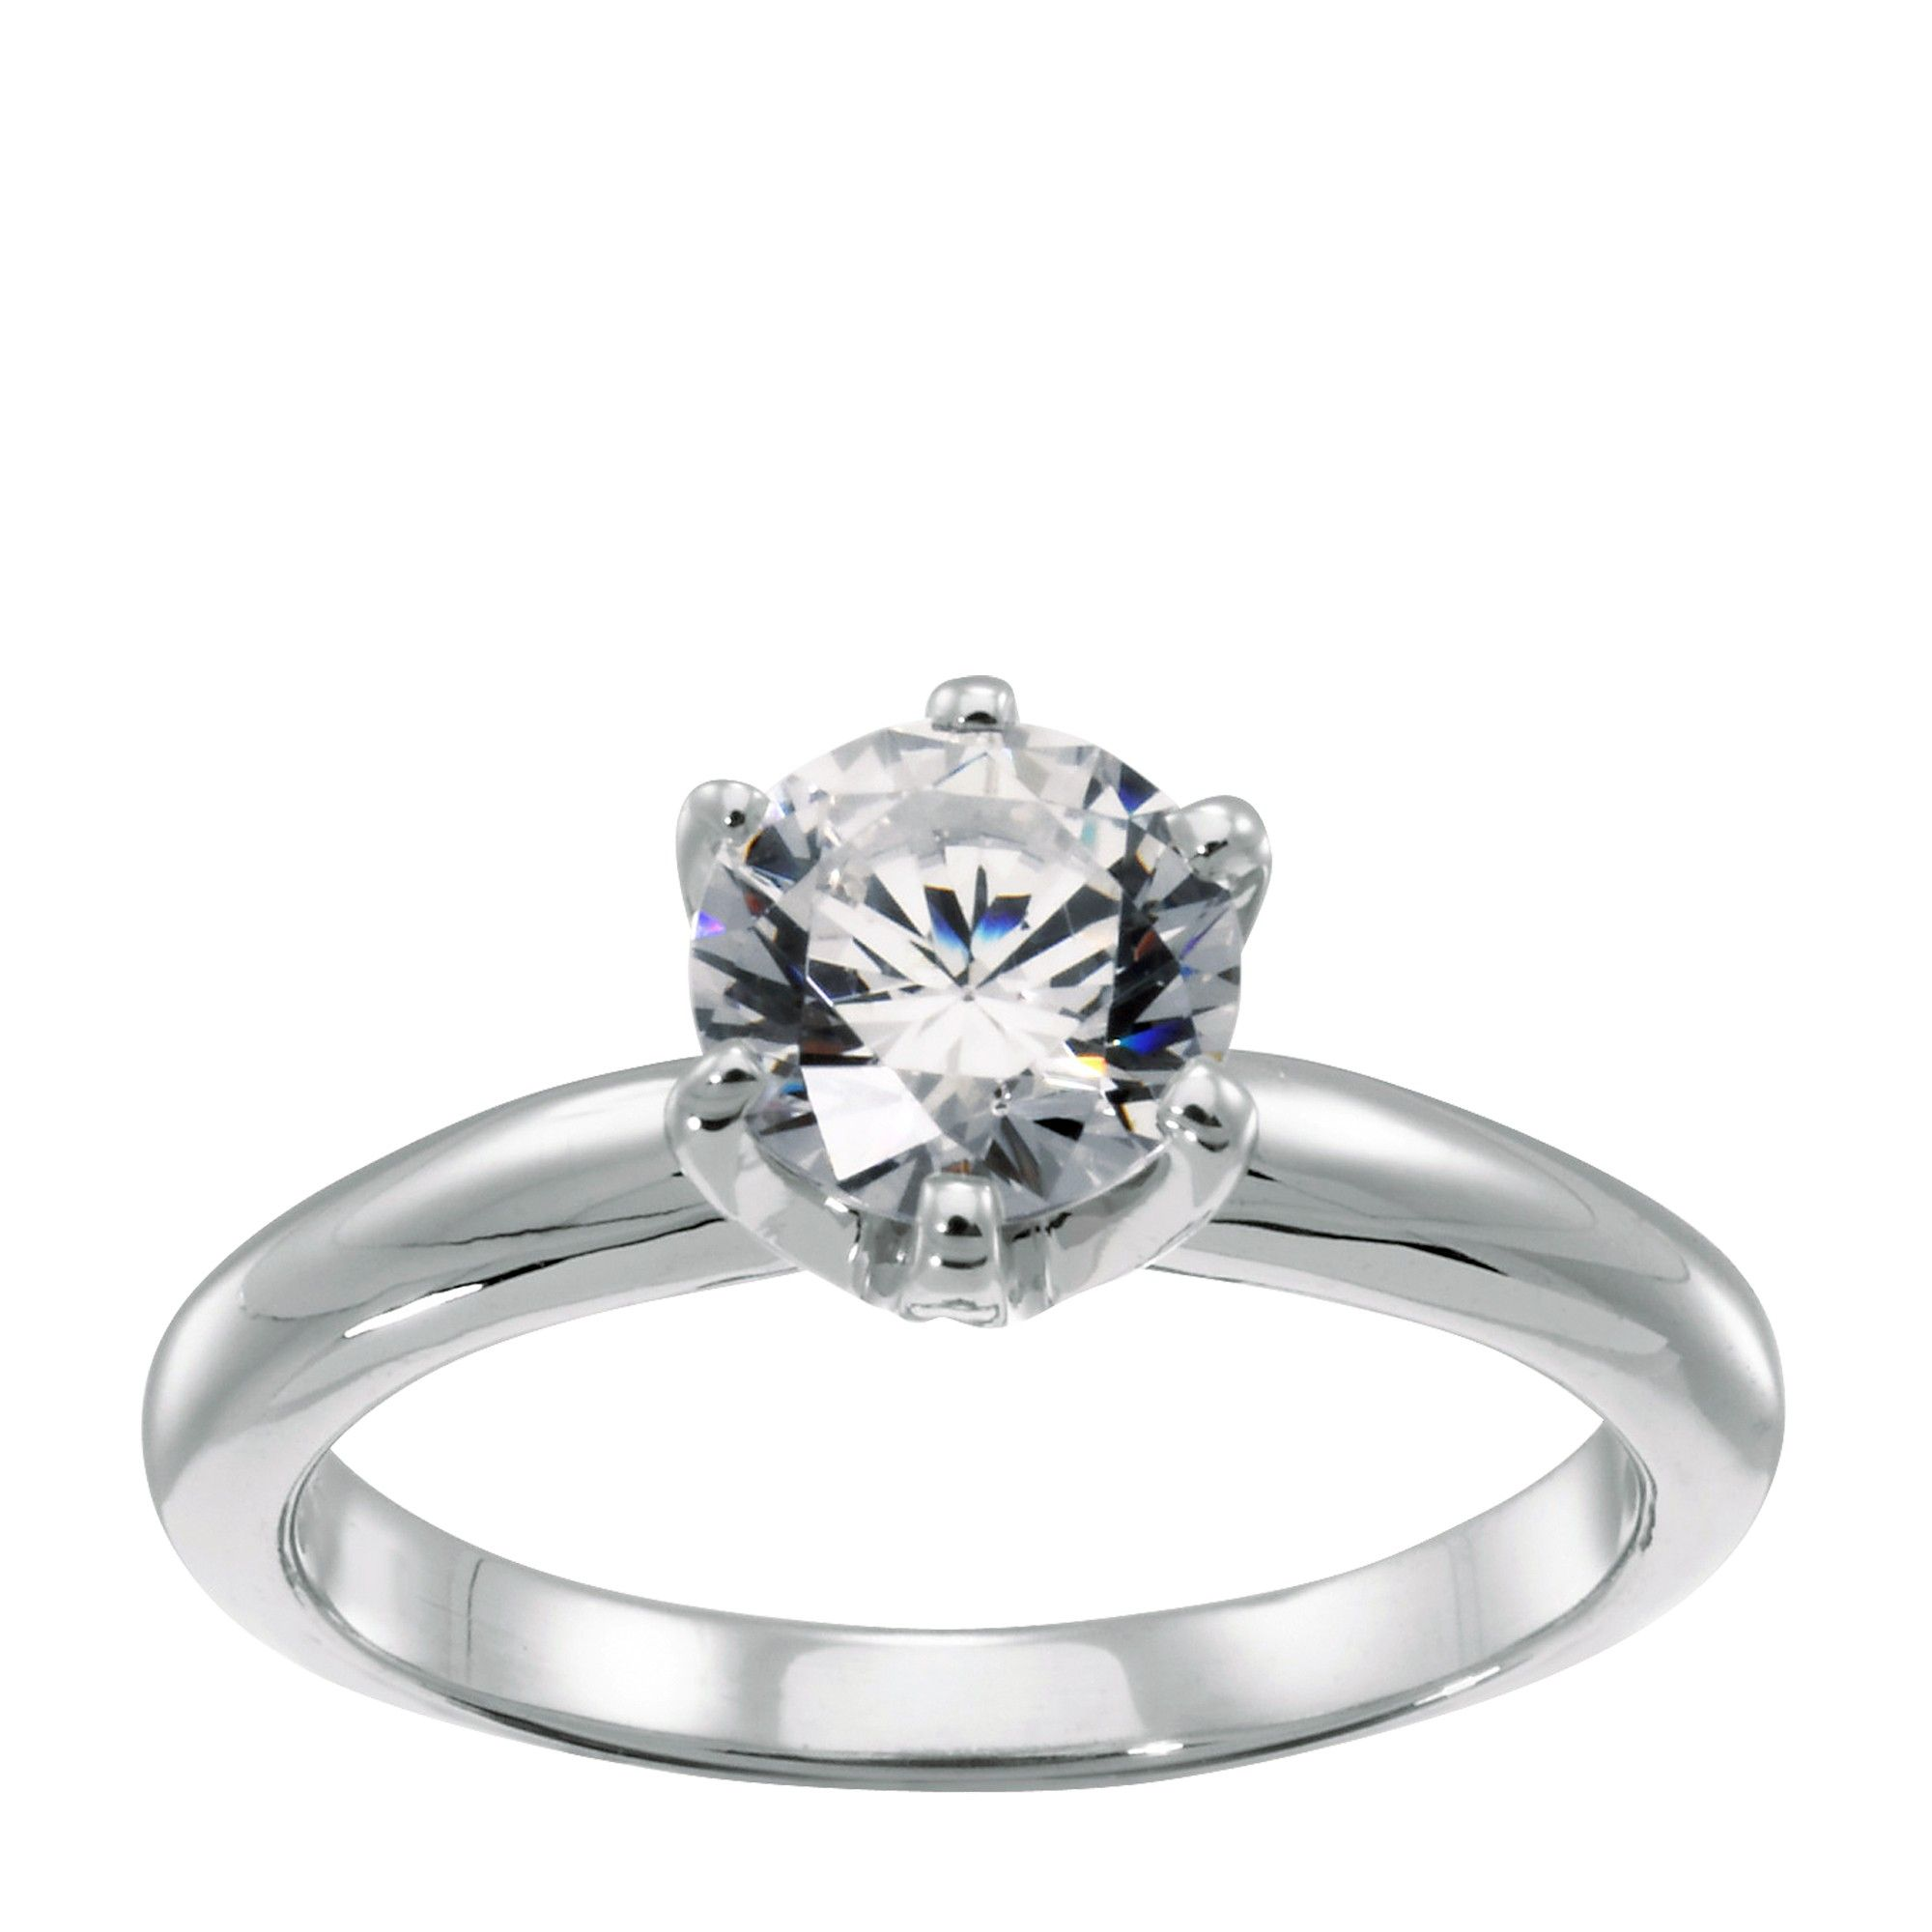 TiffanyStyle 6Prong Engagement Ring Affordable, Ethical